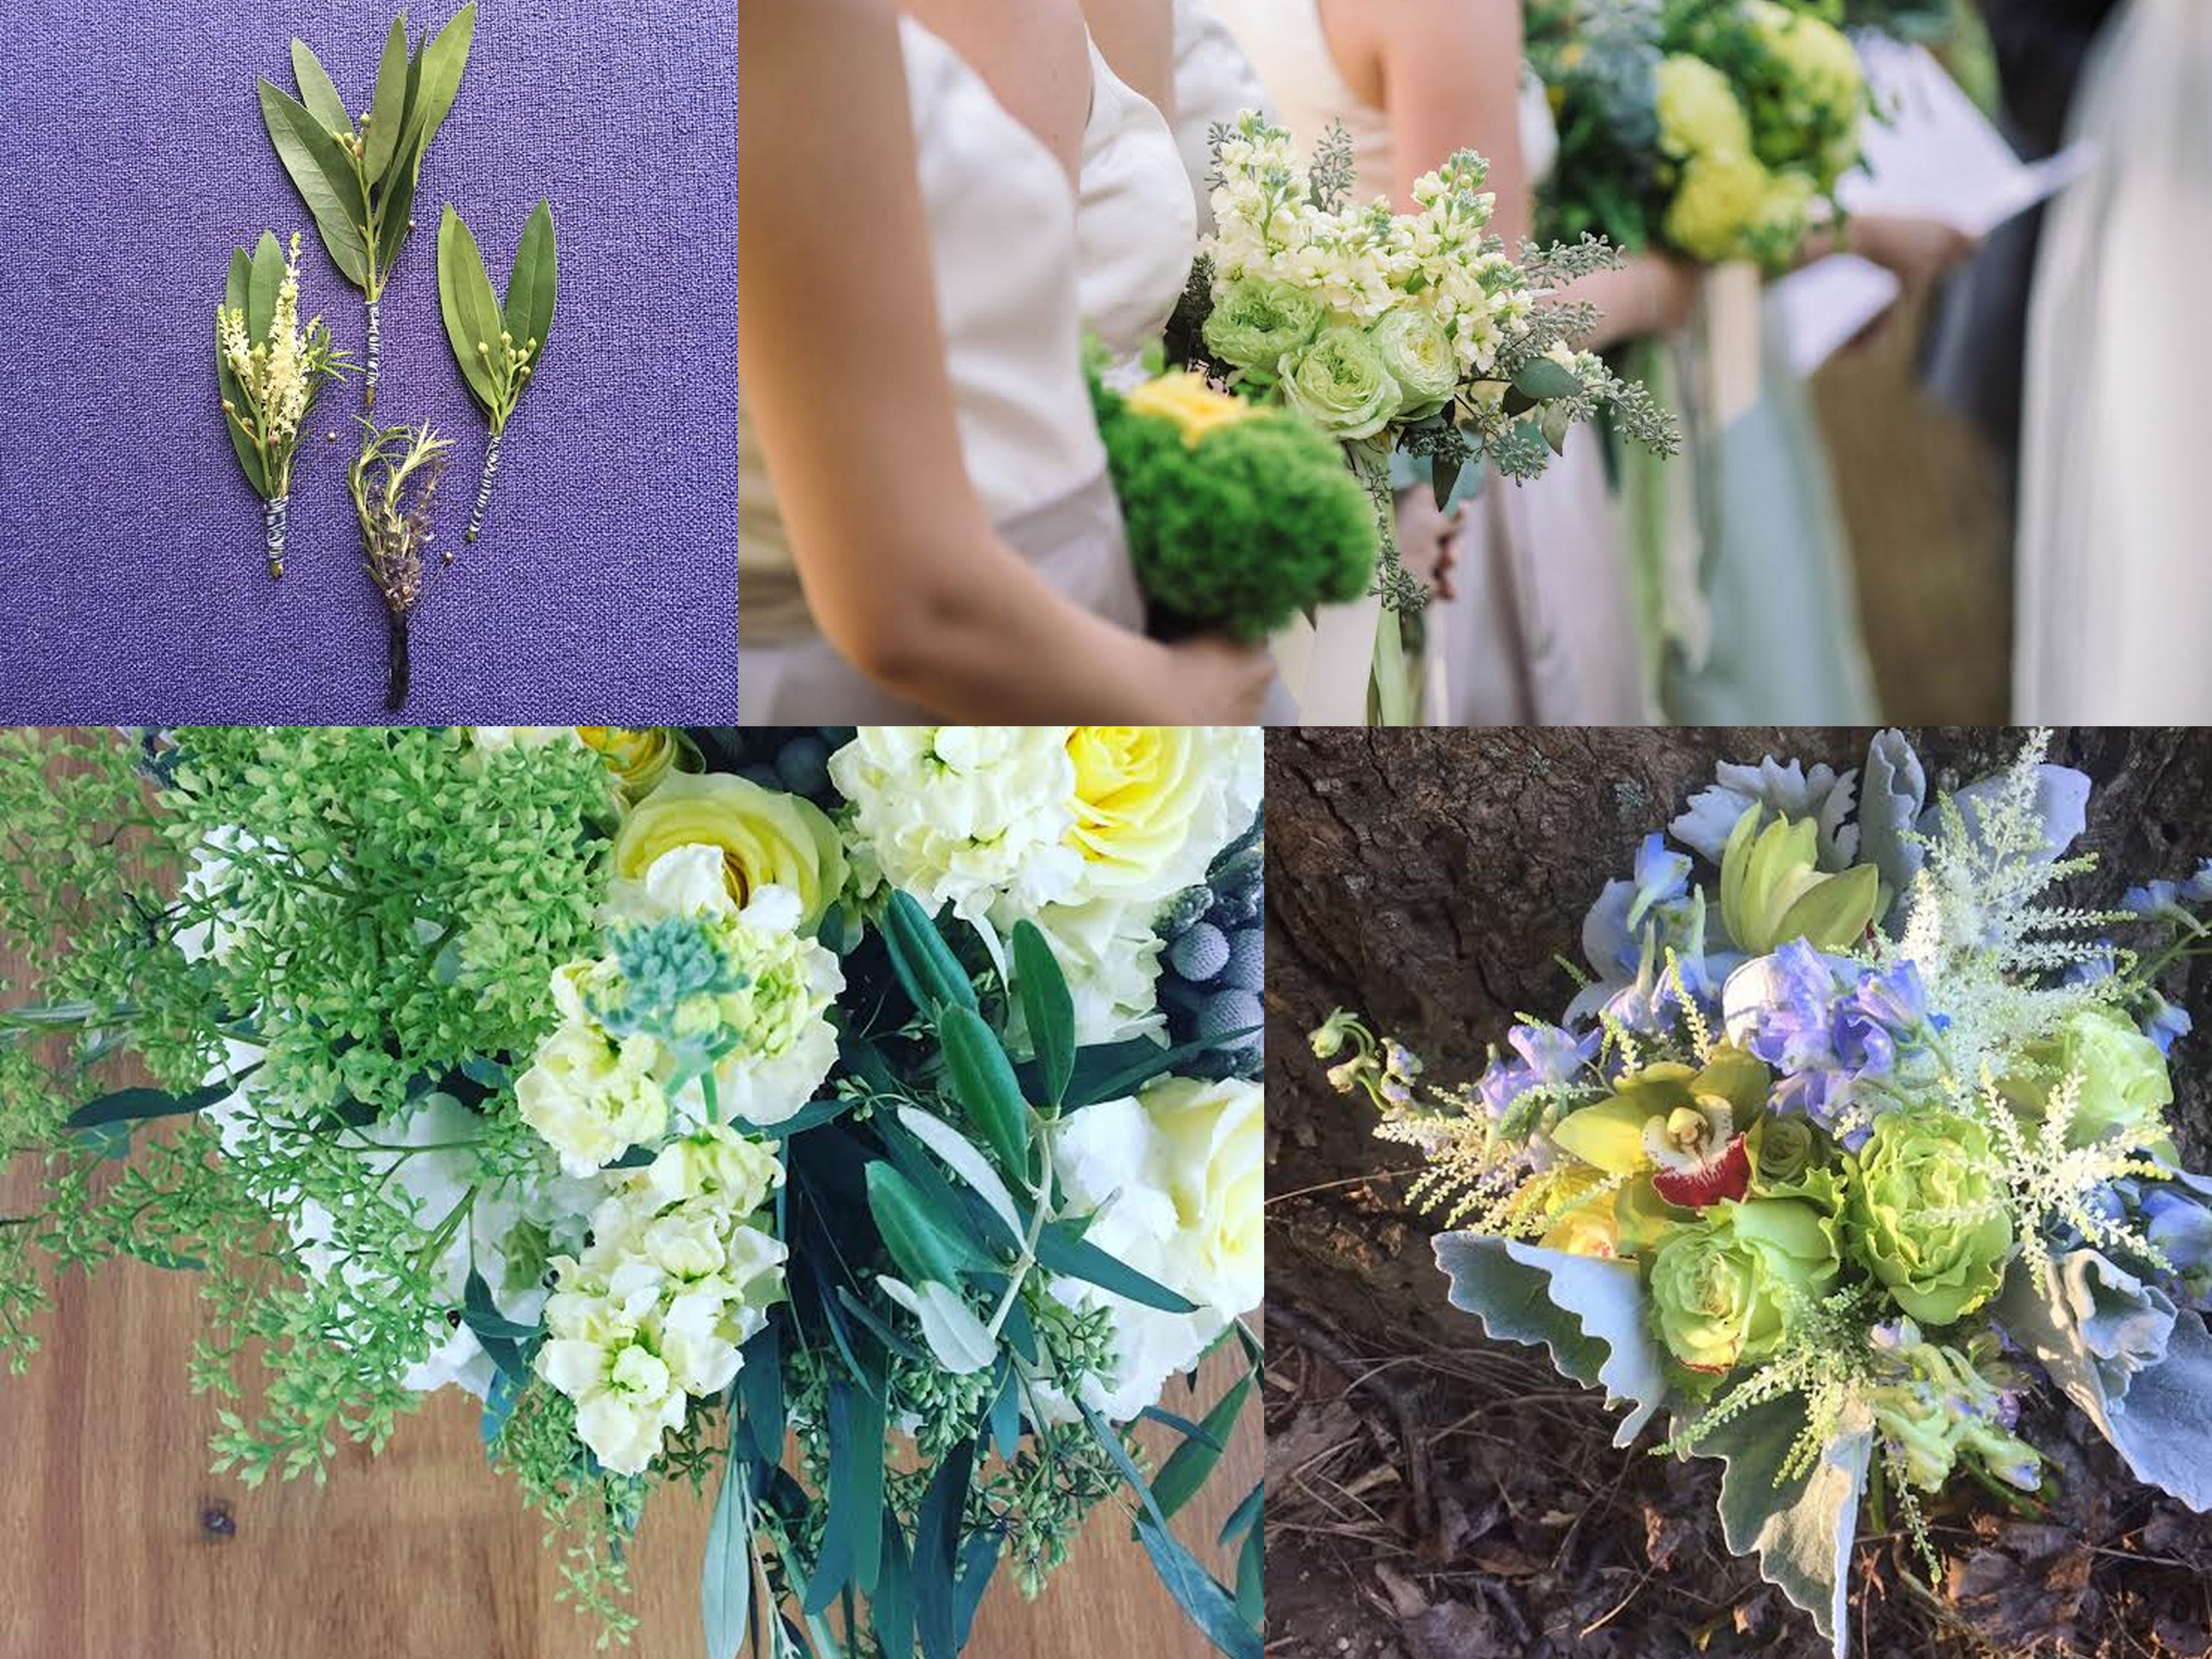 Elegance-and-Simplicity-Pantone-Color-of-the-Year-Green-2017-Wedding-Trends